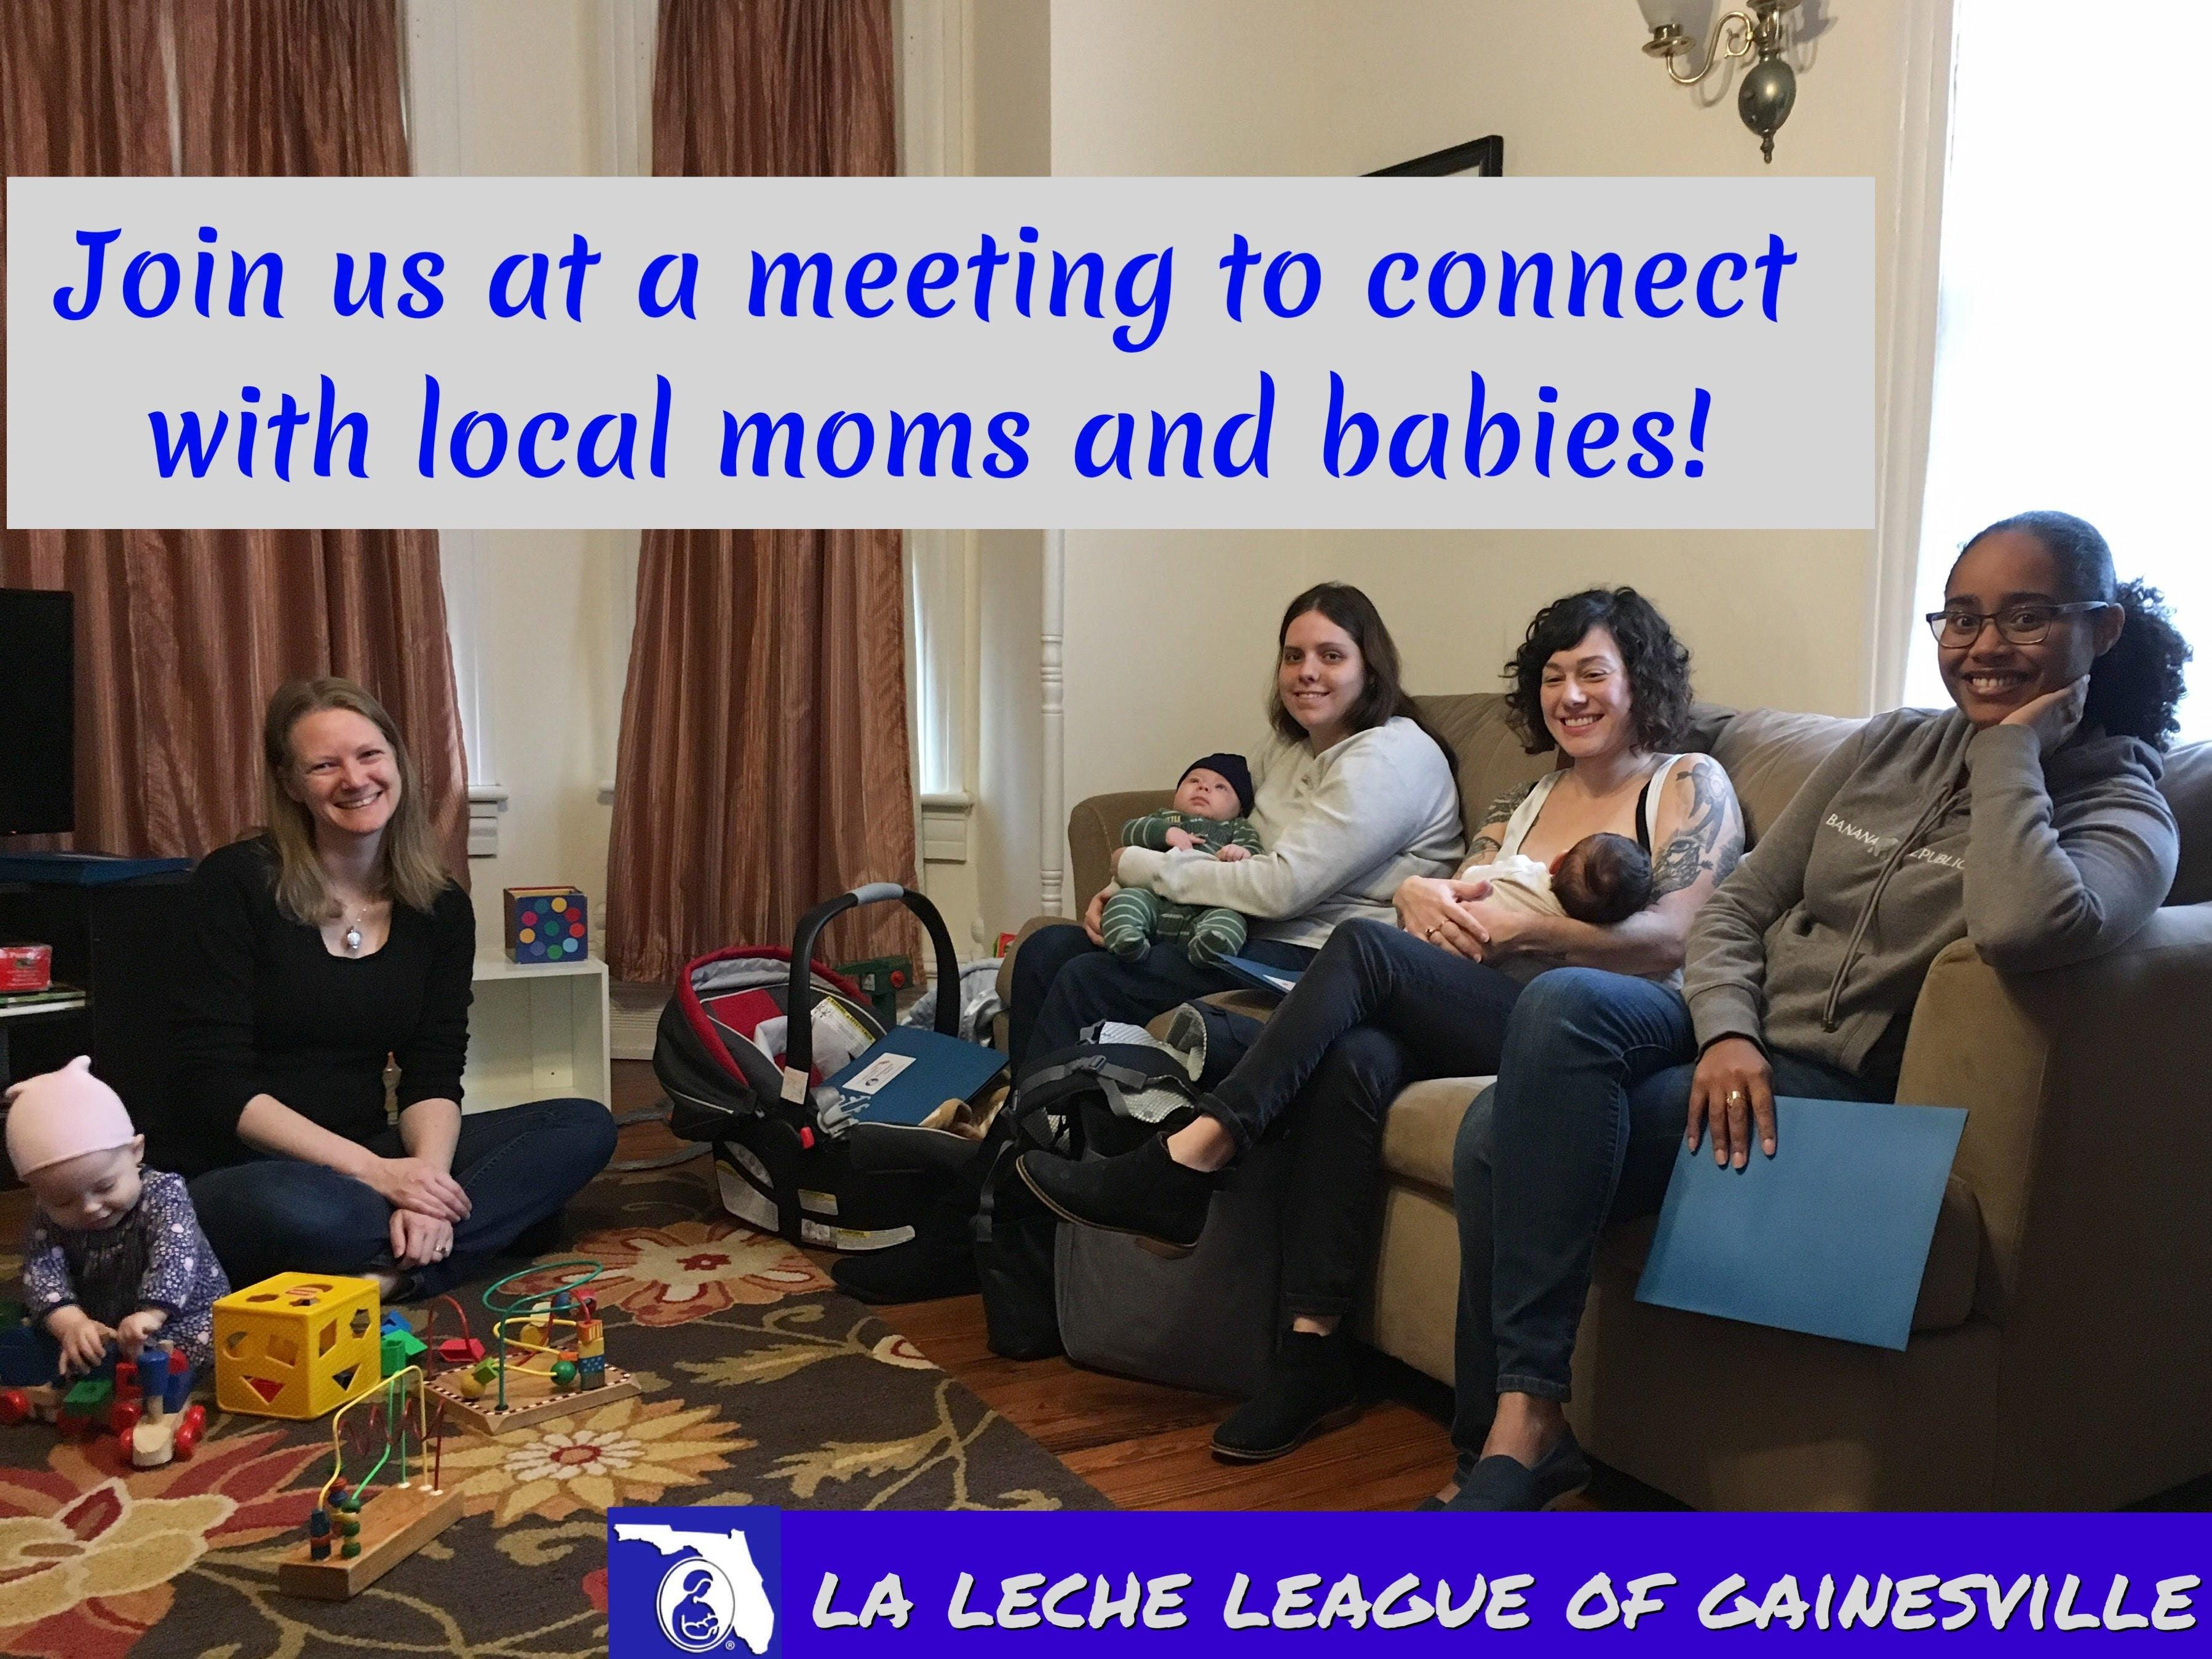 La Leche League Breastfeeding Support Group M